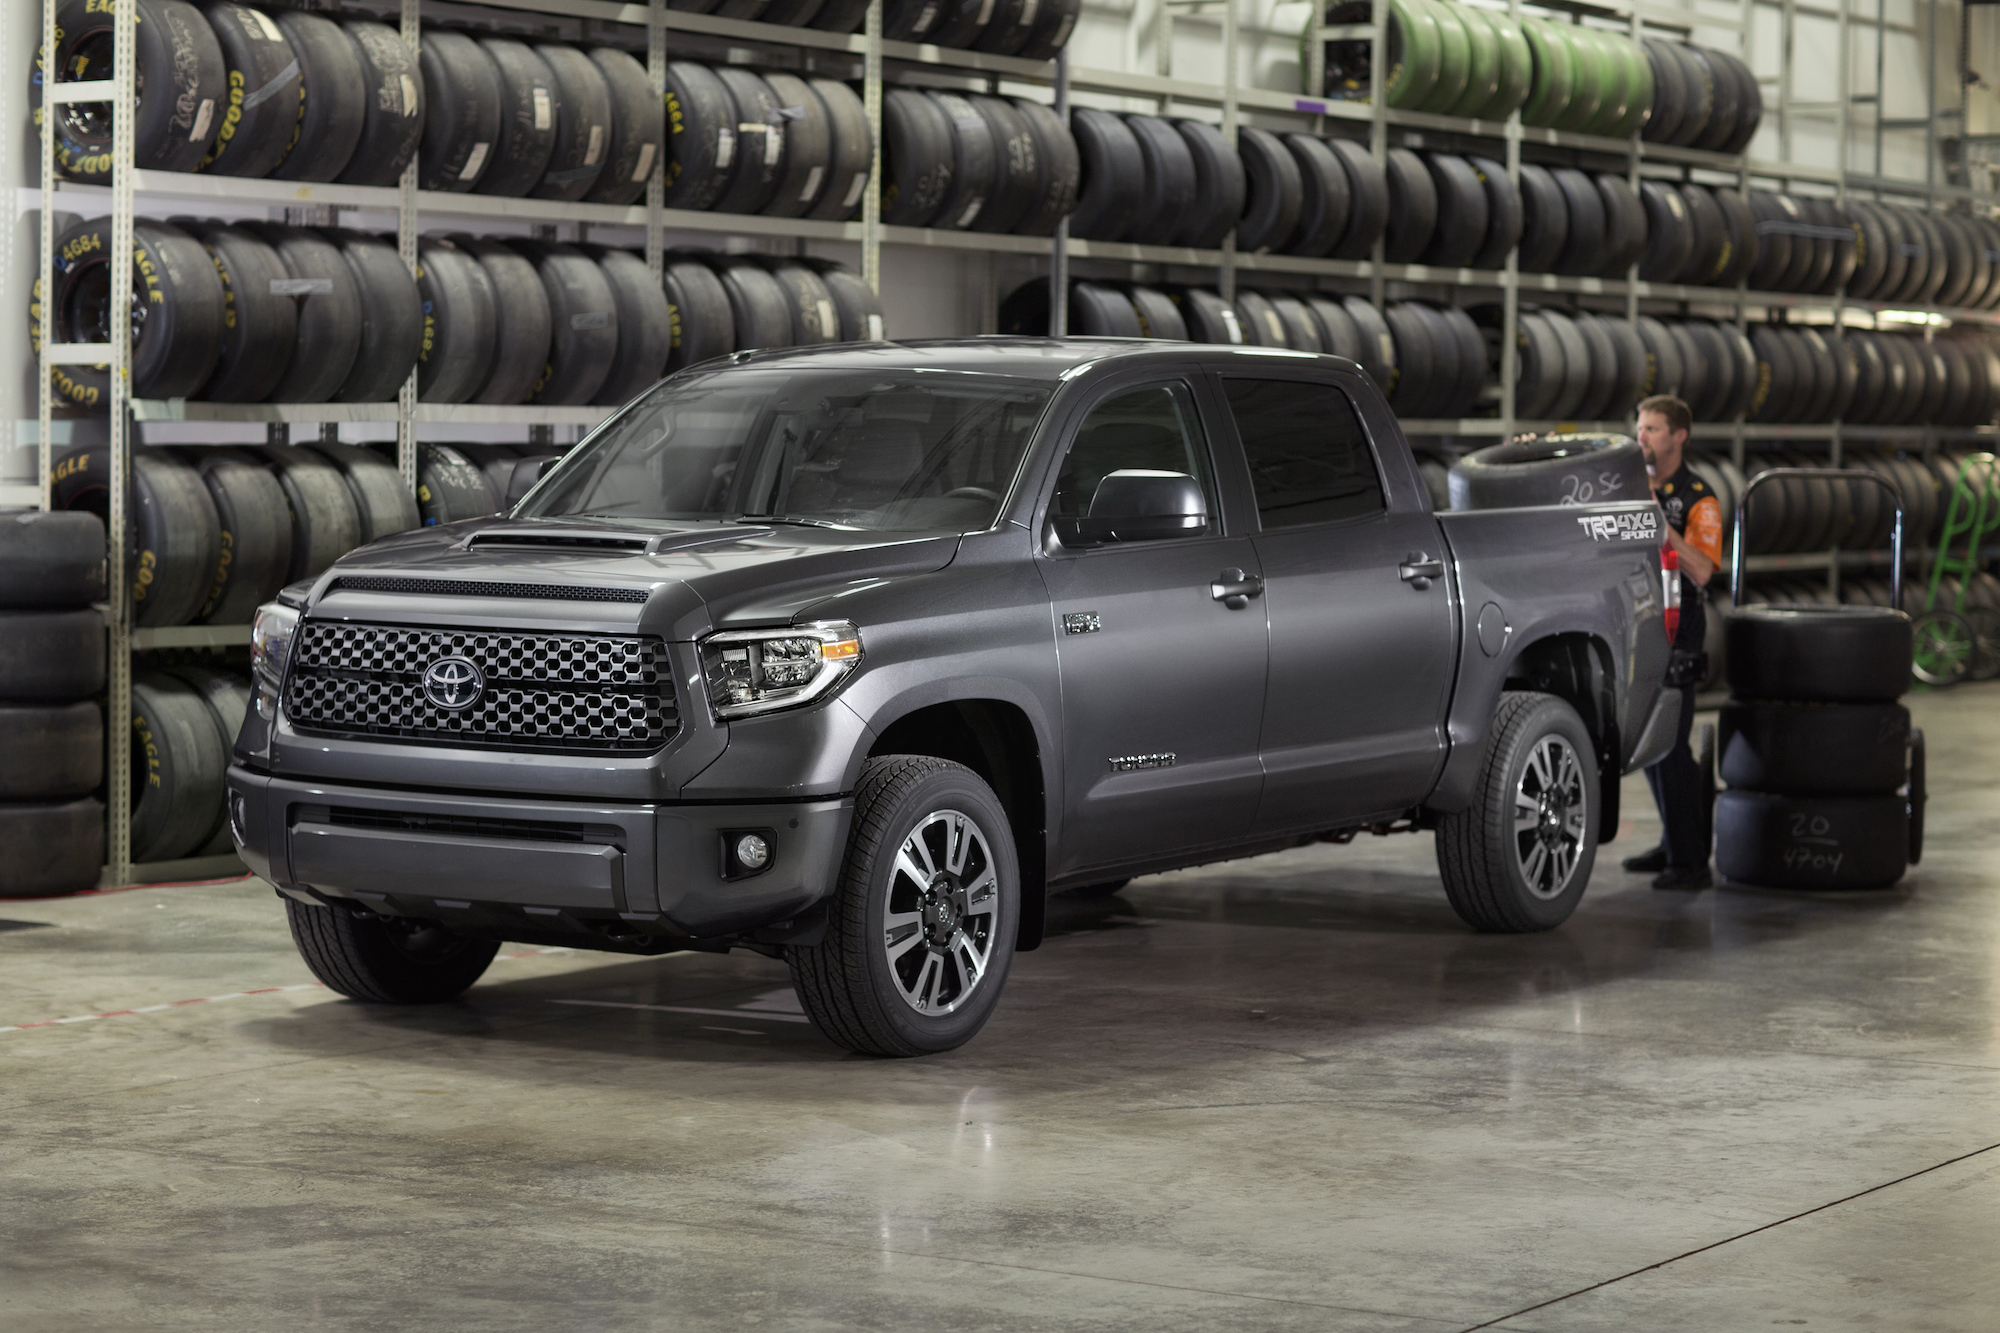 ... Are Also Available When The TRD Off Road Package Is Selected On SR5  Models. The SR And SR5 Grades Will Receive Halogen Headlights With A Black  Bezel And ...